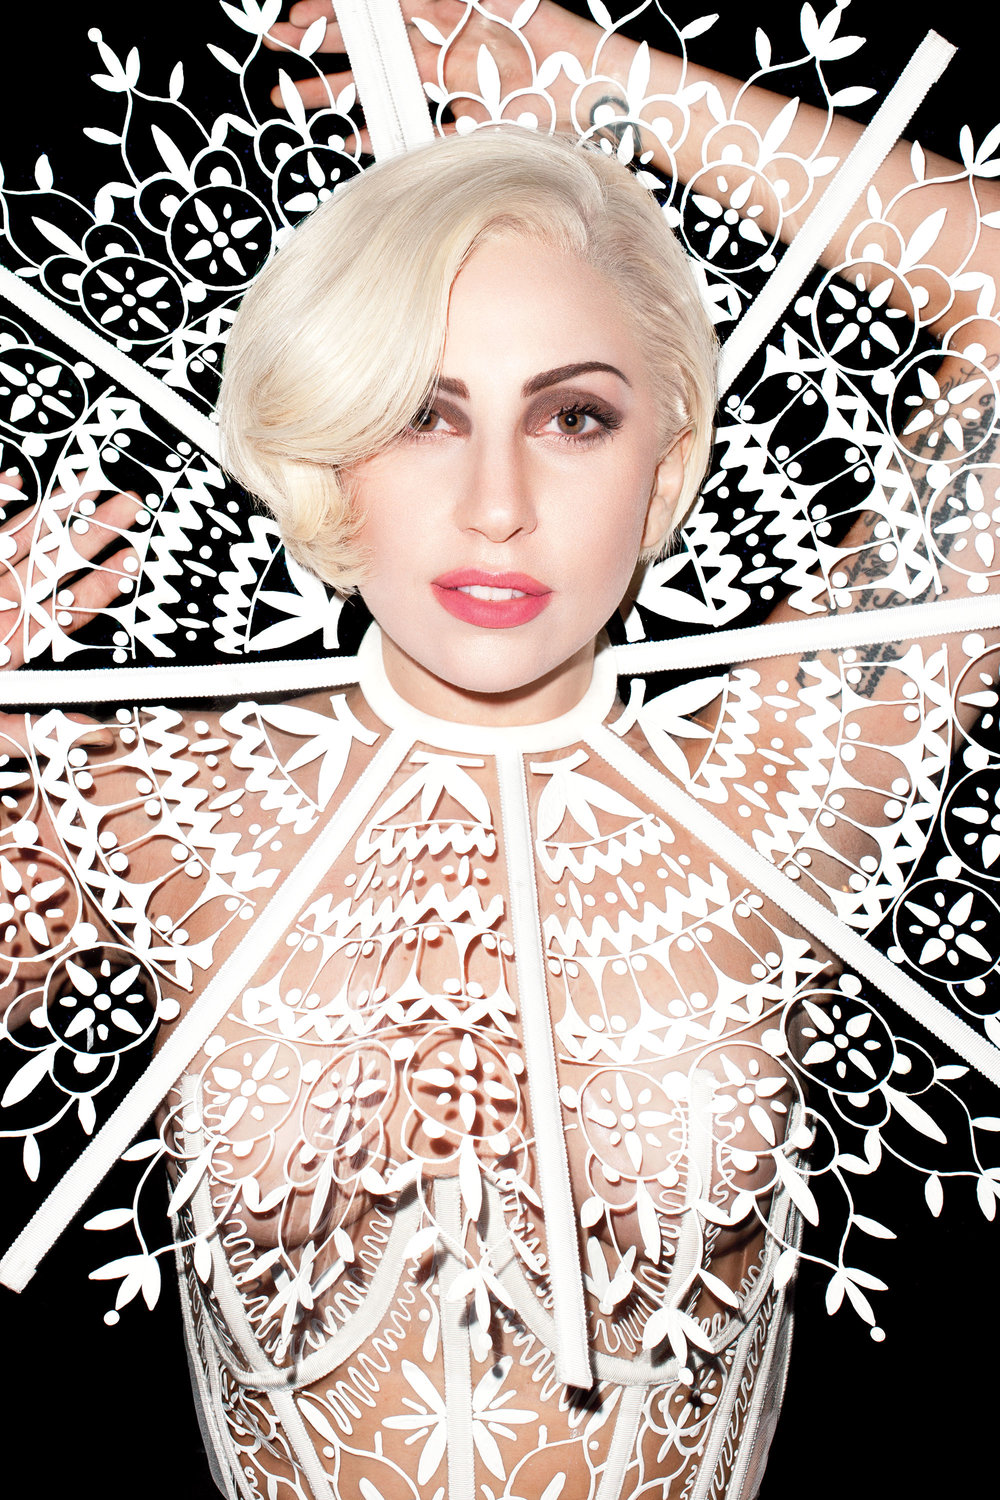 54bd0cd48740e_-_hbz-march-2014-lady-gaga-00-carolina-herrera.jpg